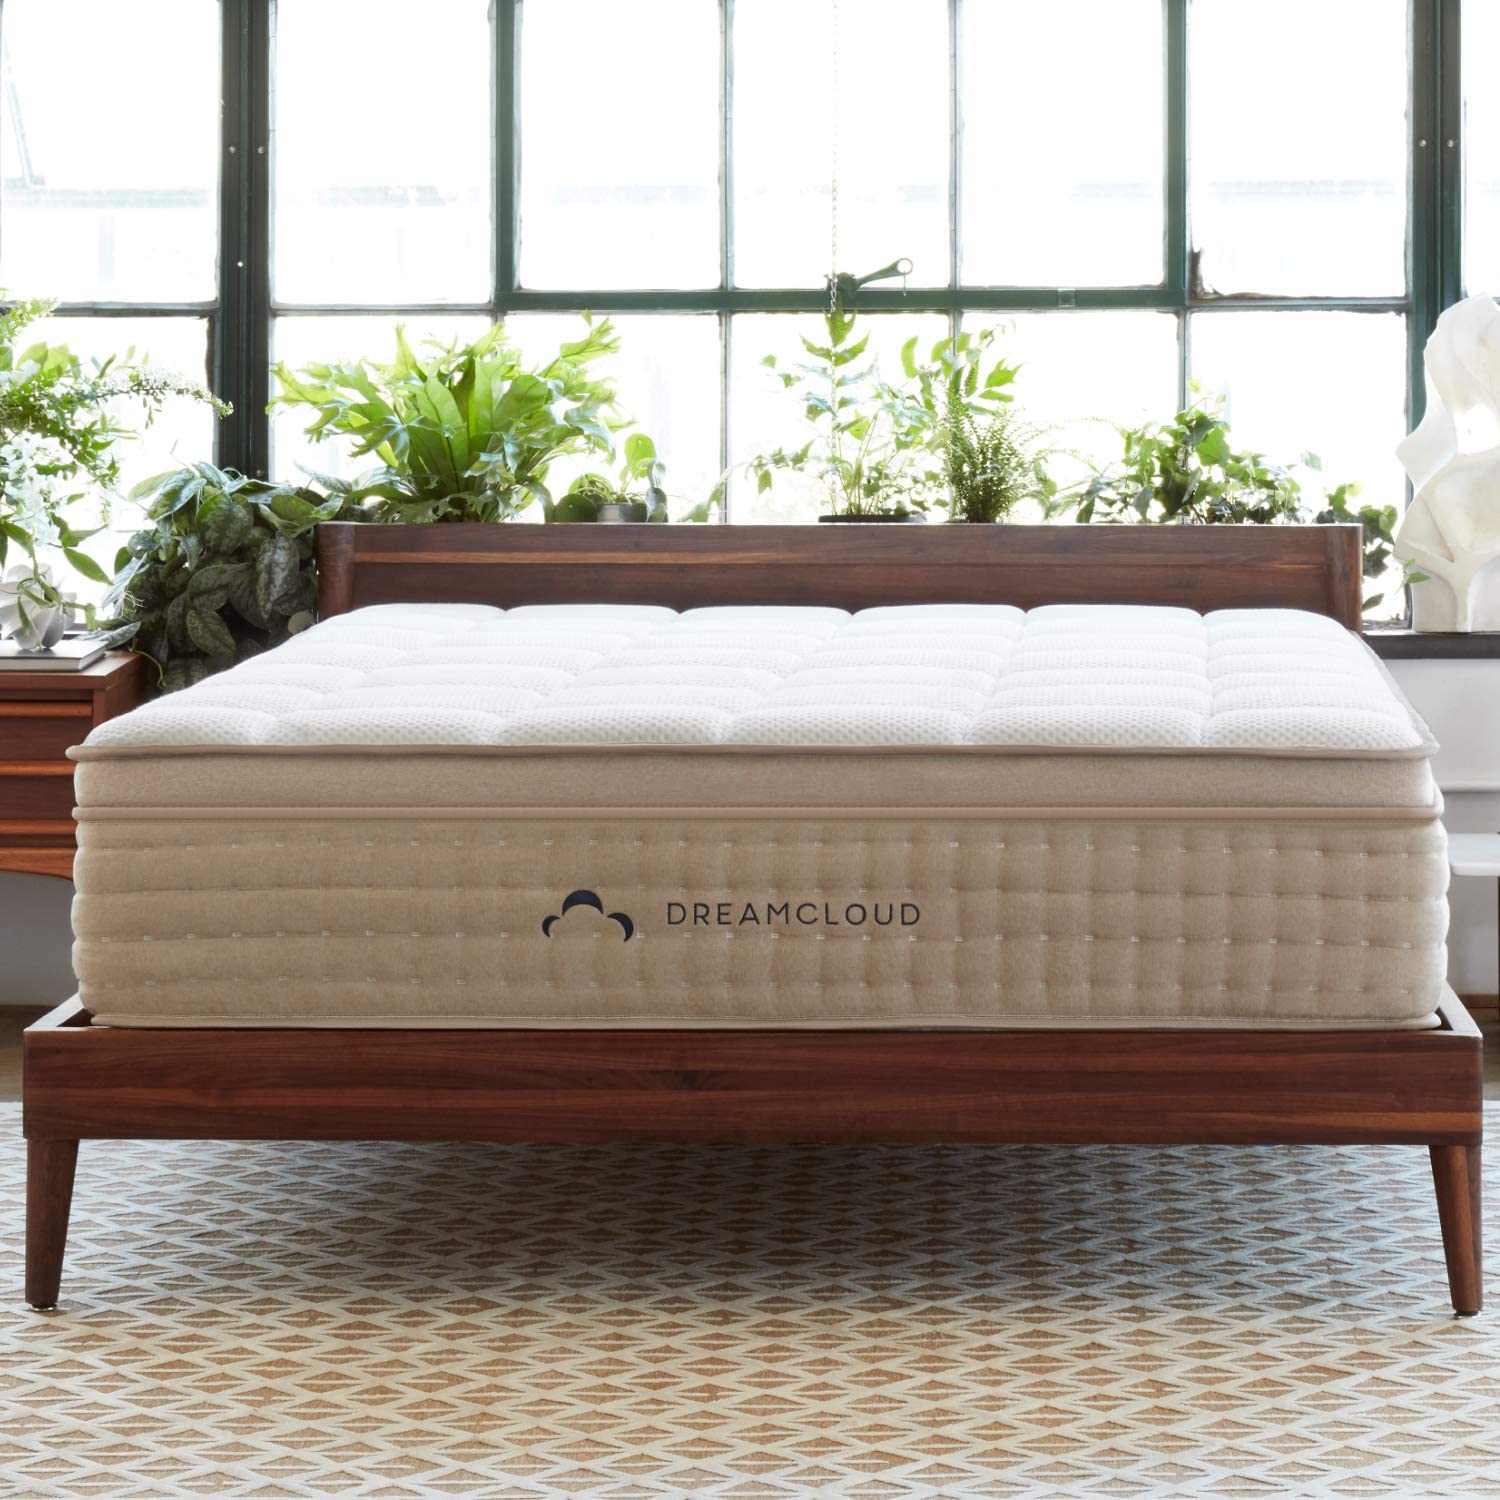 DreamCloud Full Mattress – Luxury Hybrid Mattress with 6 Premium Layers – CertiPUR-US Certified – 180 Night Home Trial – Everlong Warranty